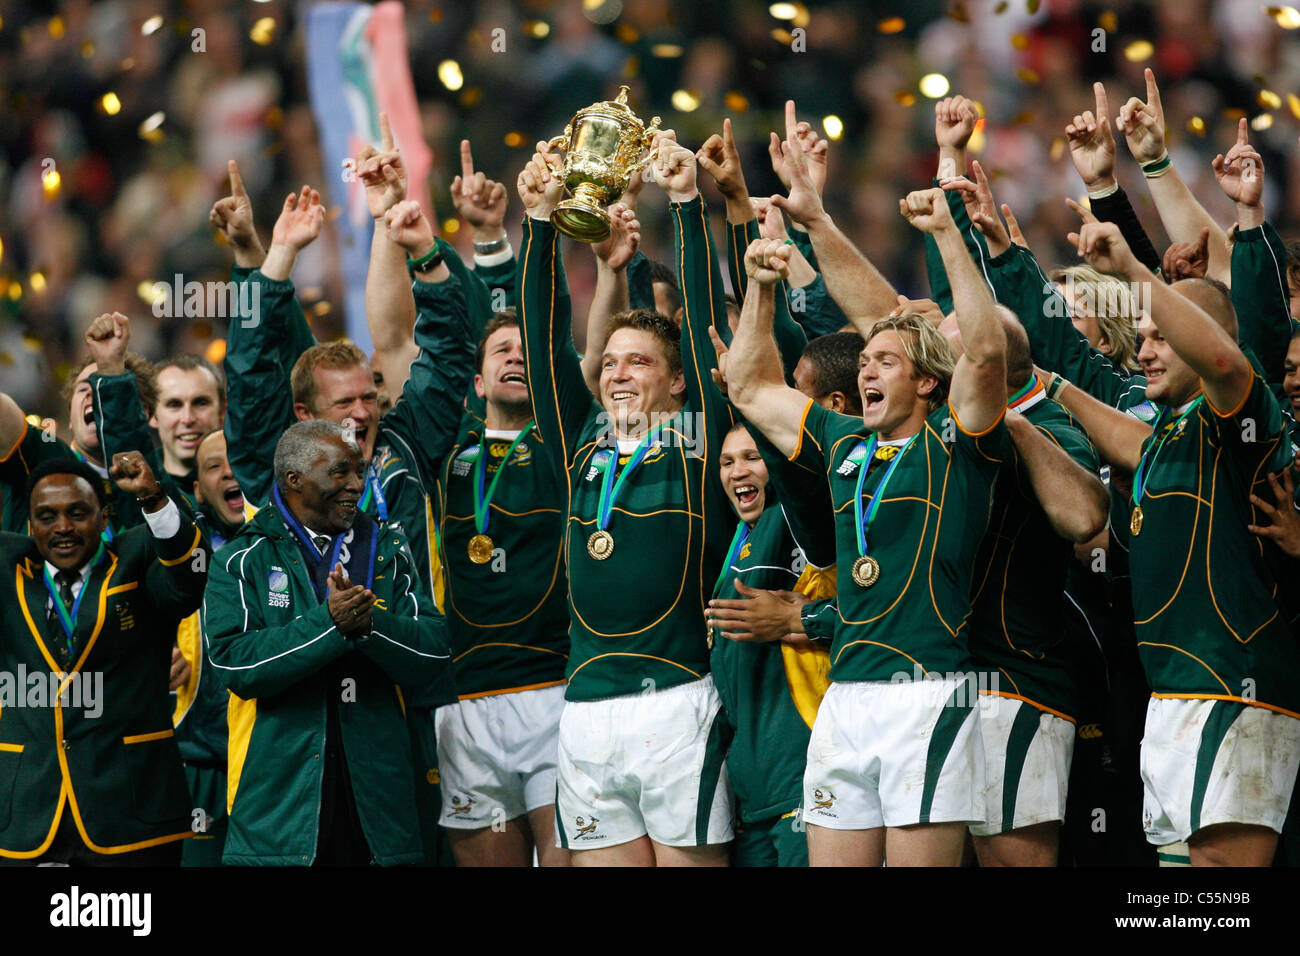 South Africa Winner of the Rugby World Cup 2007 FINAL ...